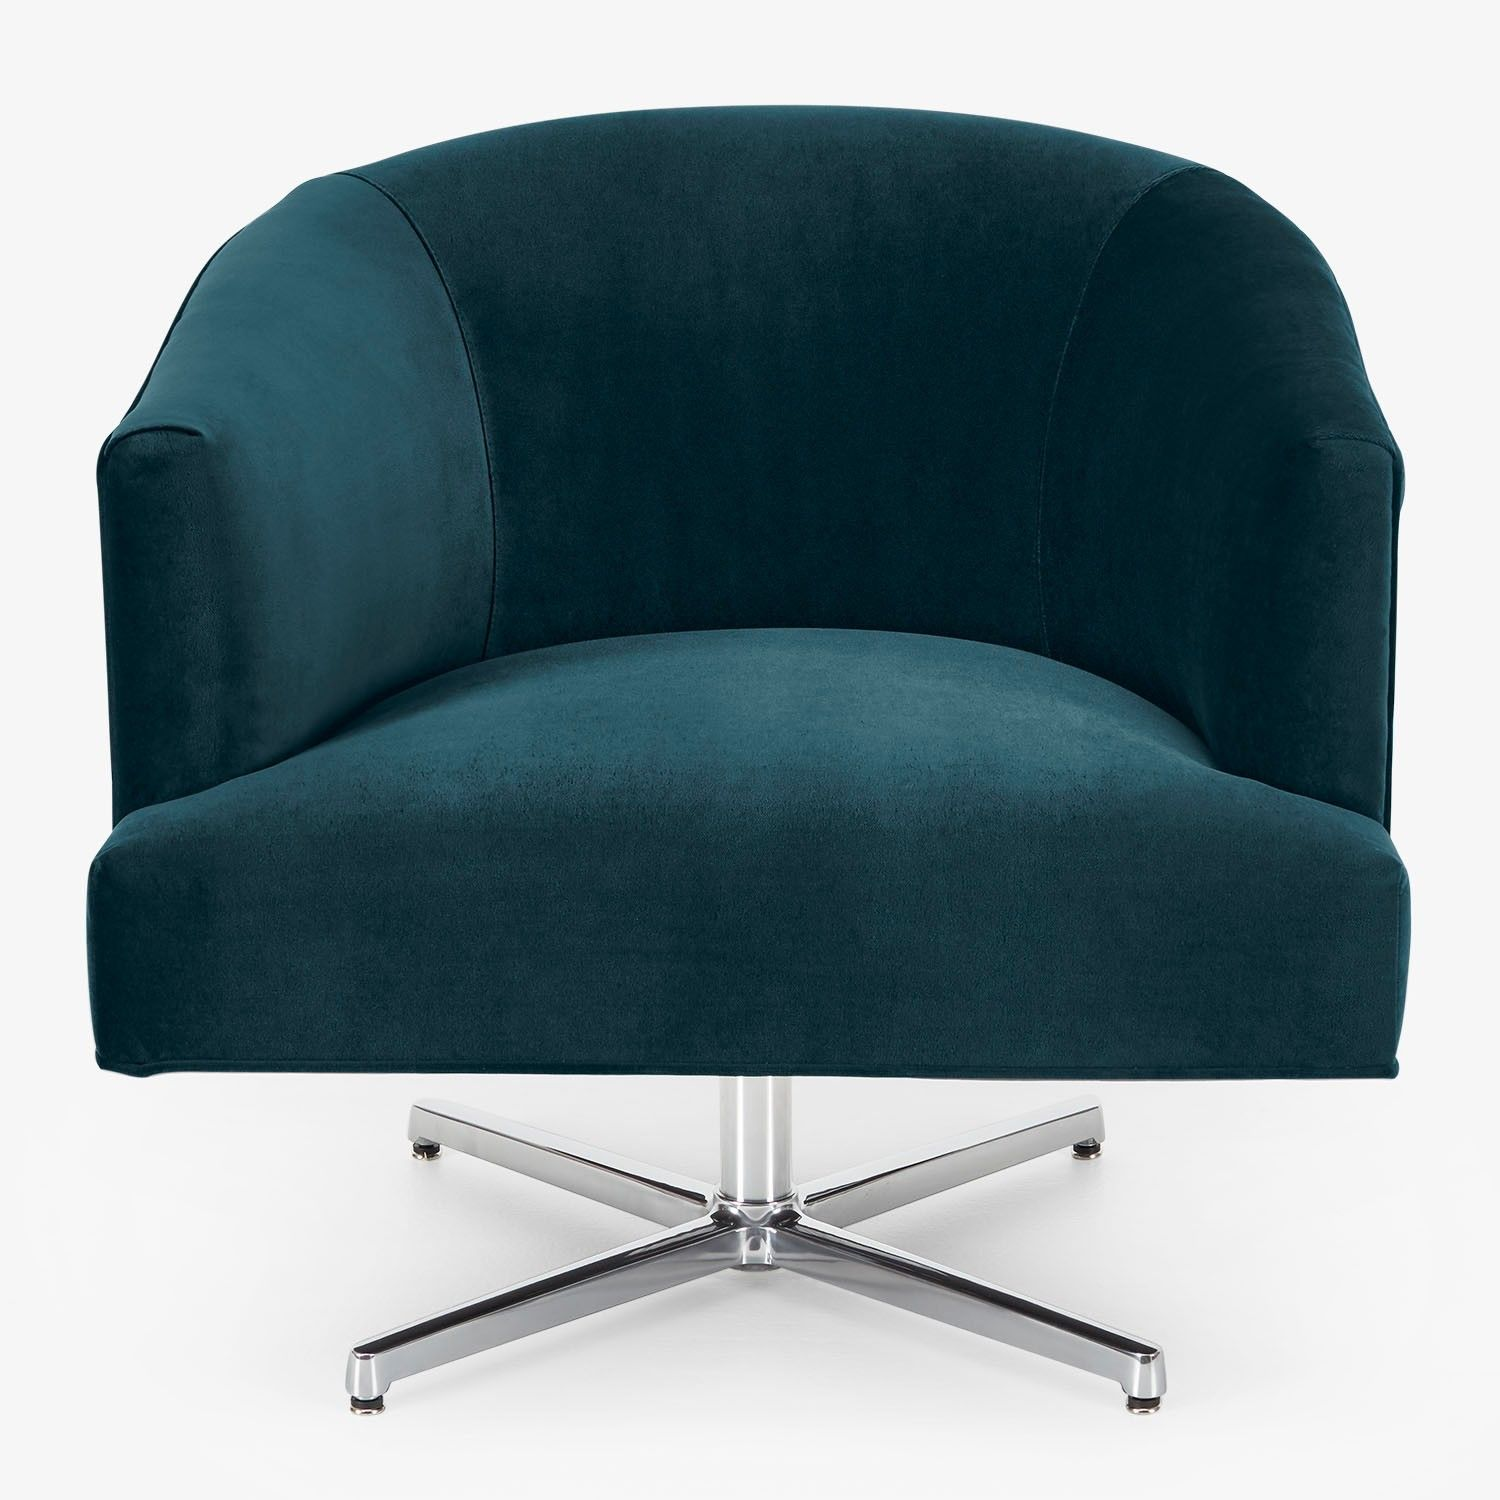 Swivel Chair On Carpet Amazon Silver Covers Cobble Hill Fremont Abc Home Yazlander In